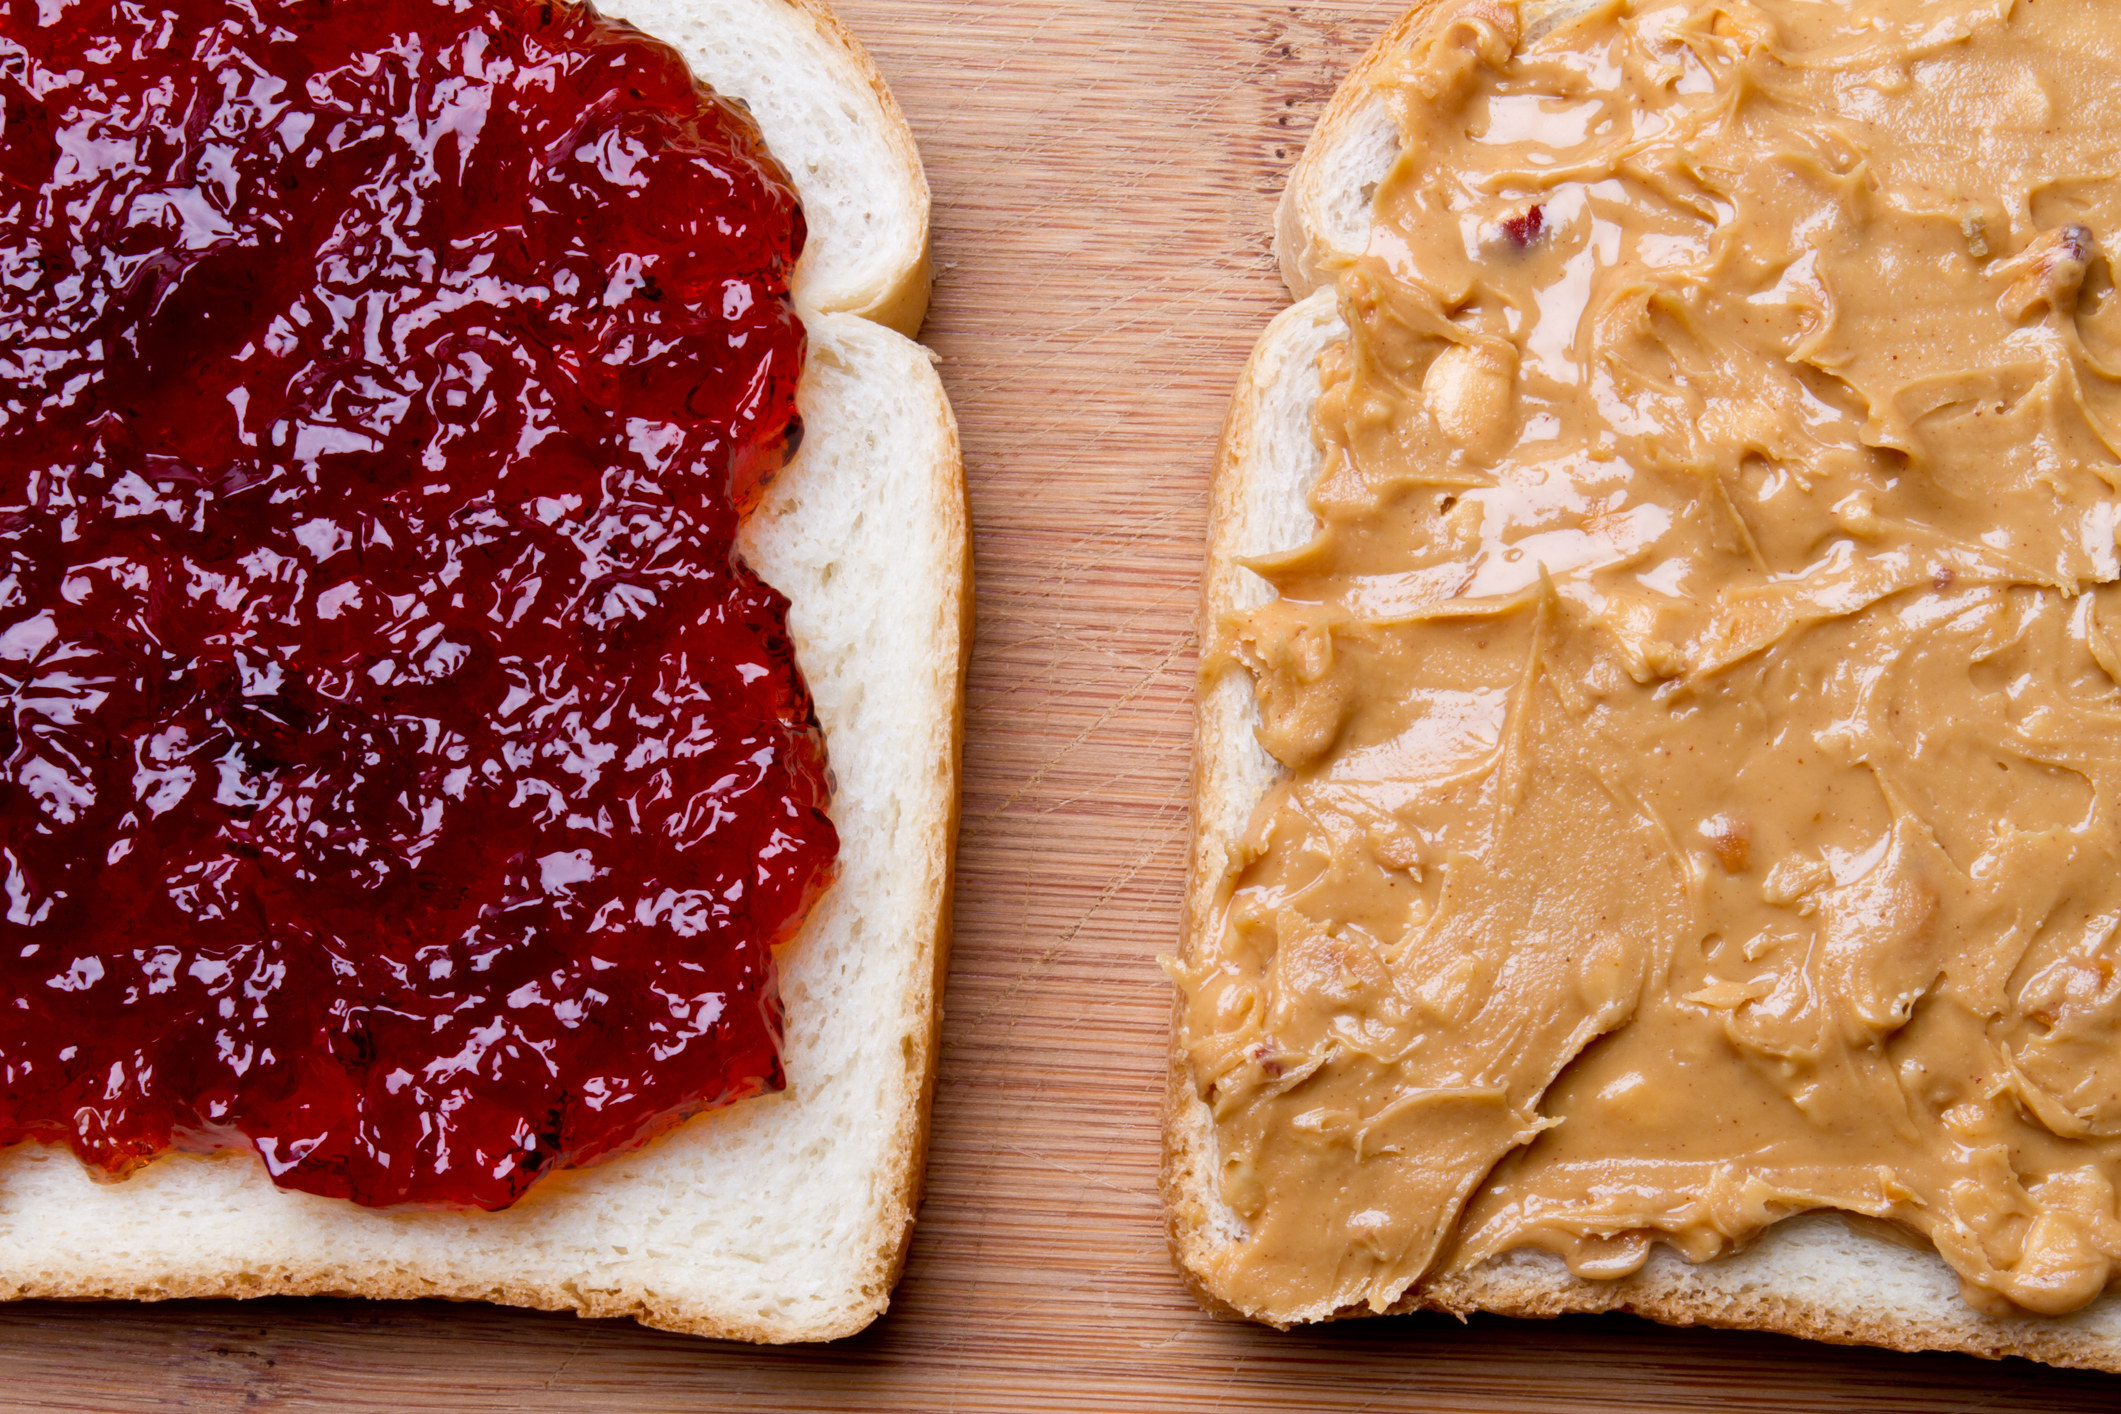 Peanut butter and jelly spread on bread